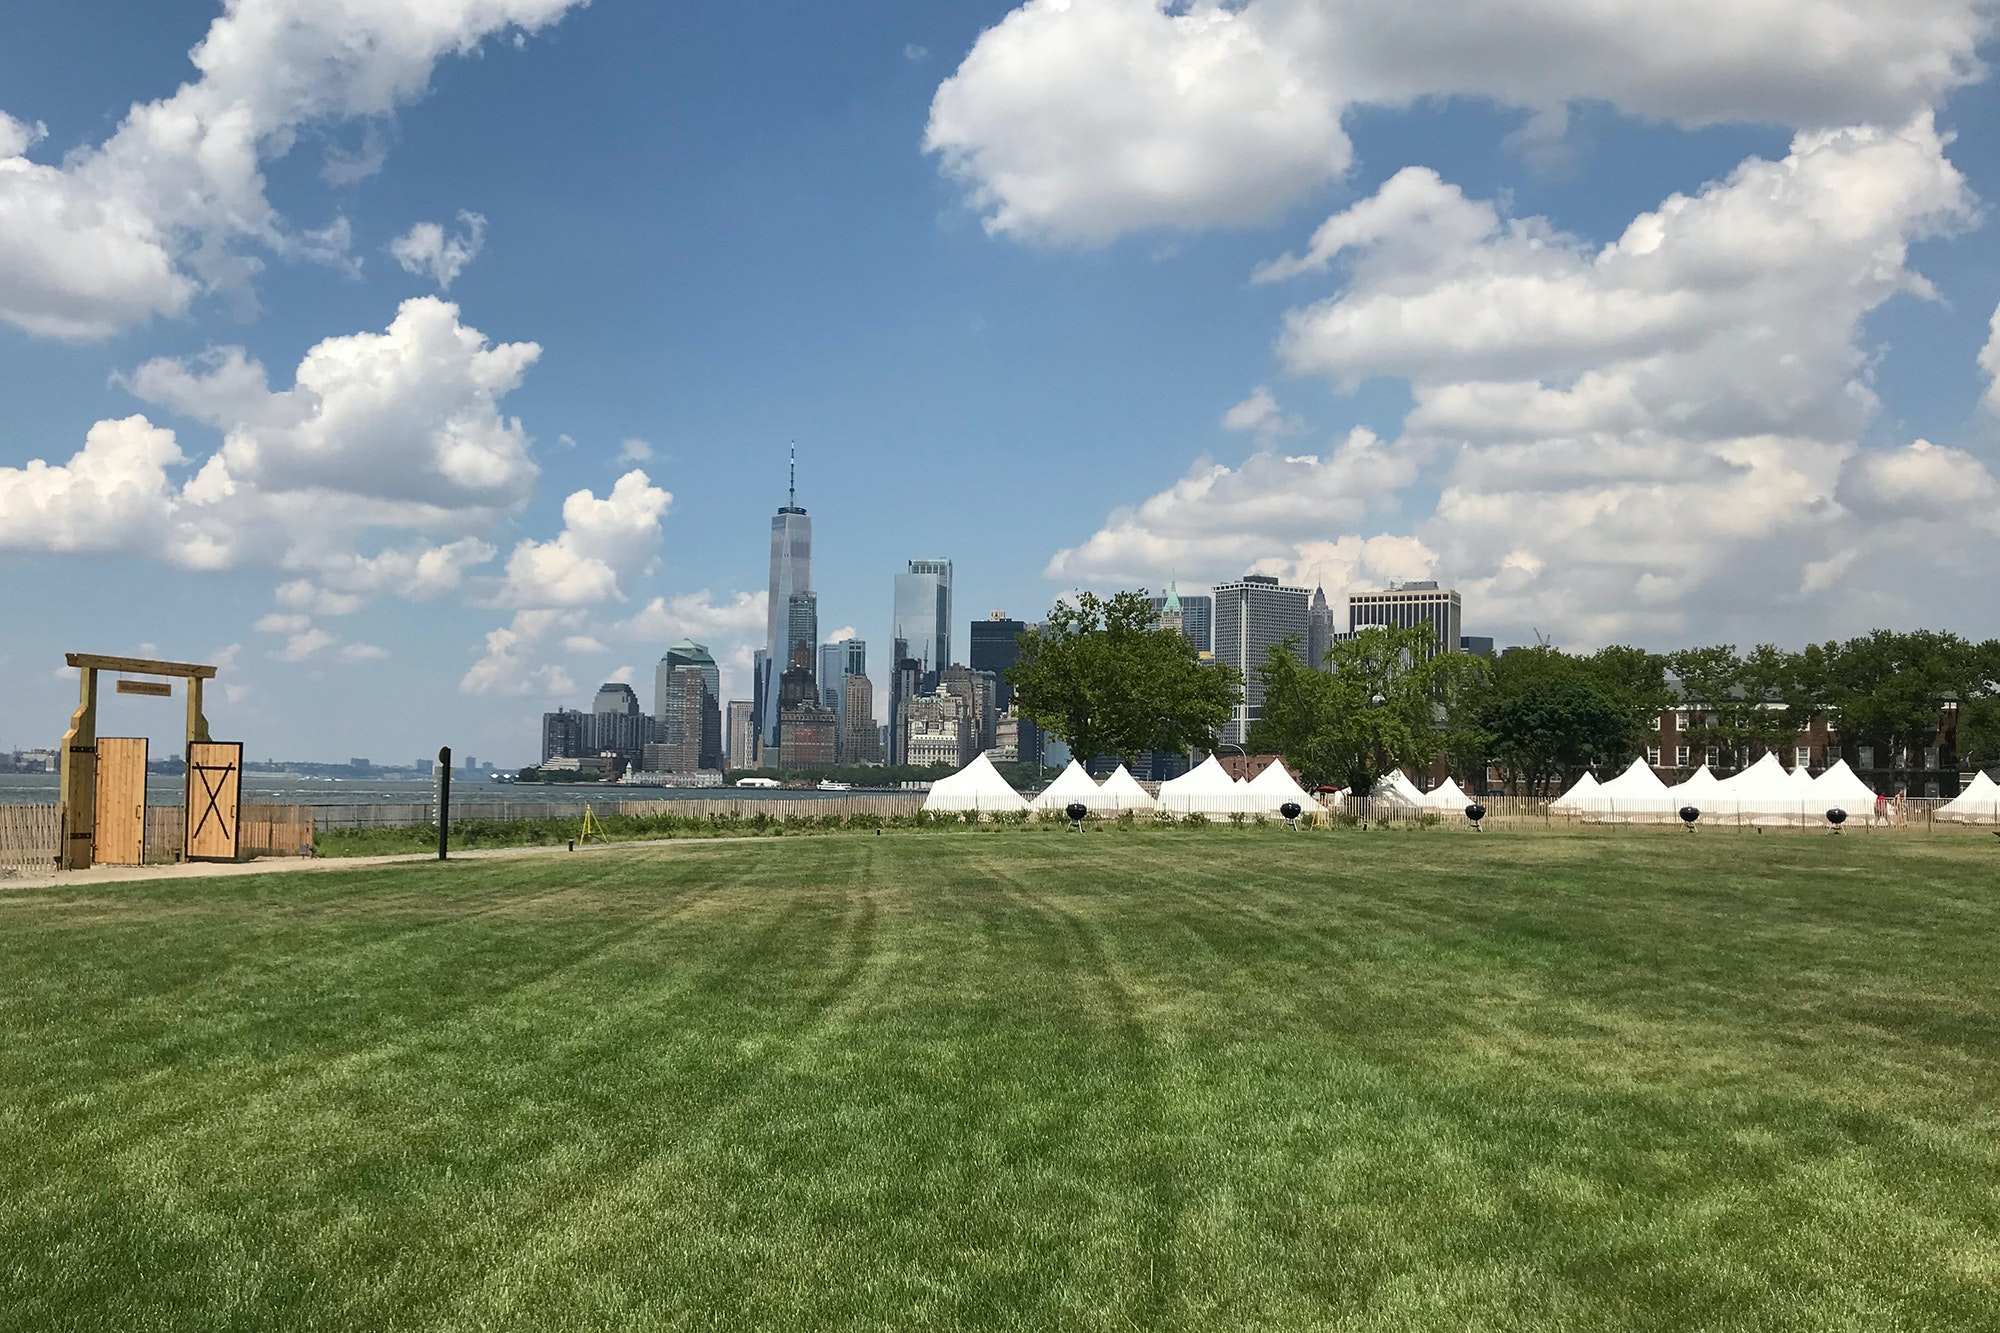 The great lawn at the center of Collective Governors Island